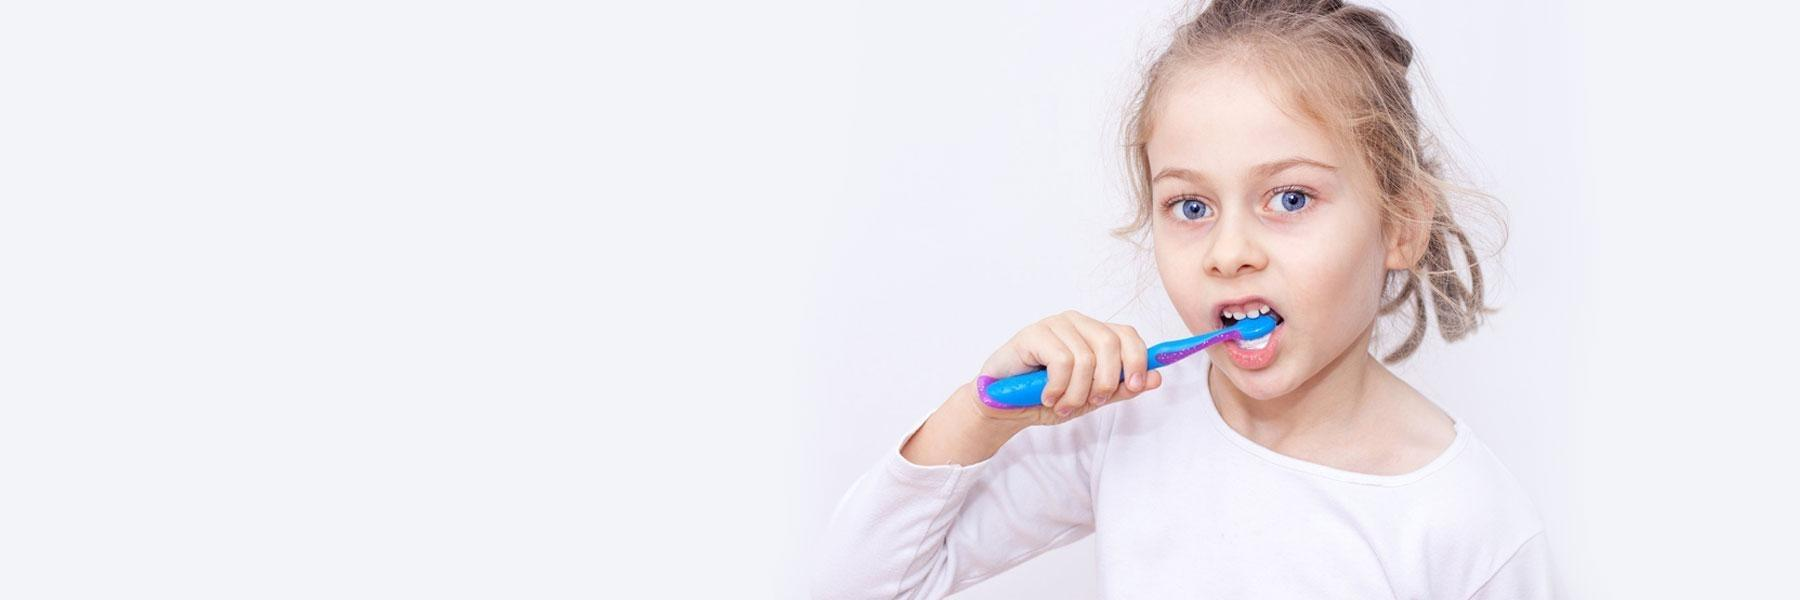 Girl brushing teeth | children's restorative dentistry Palos Heights P